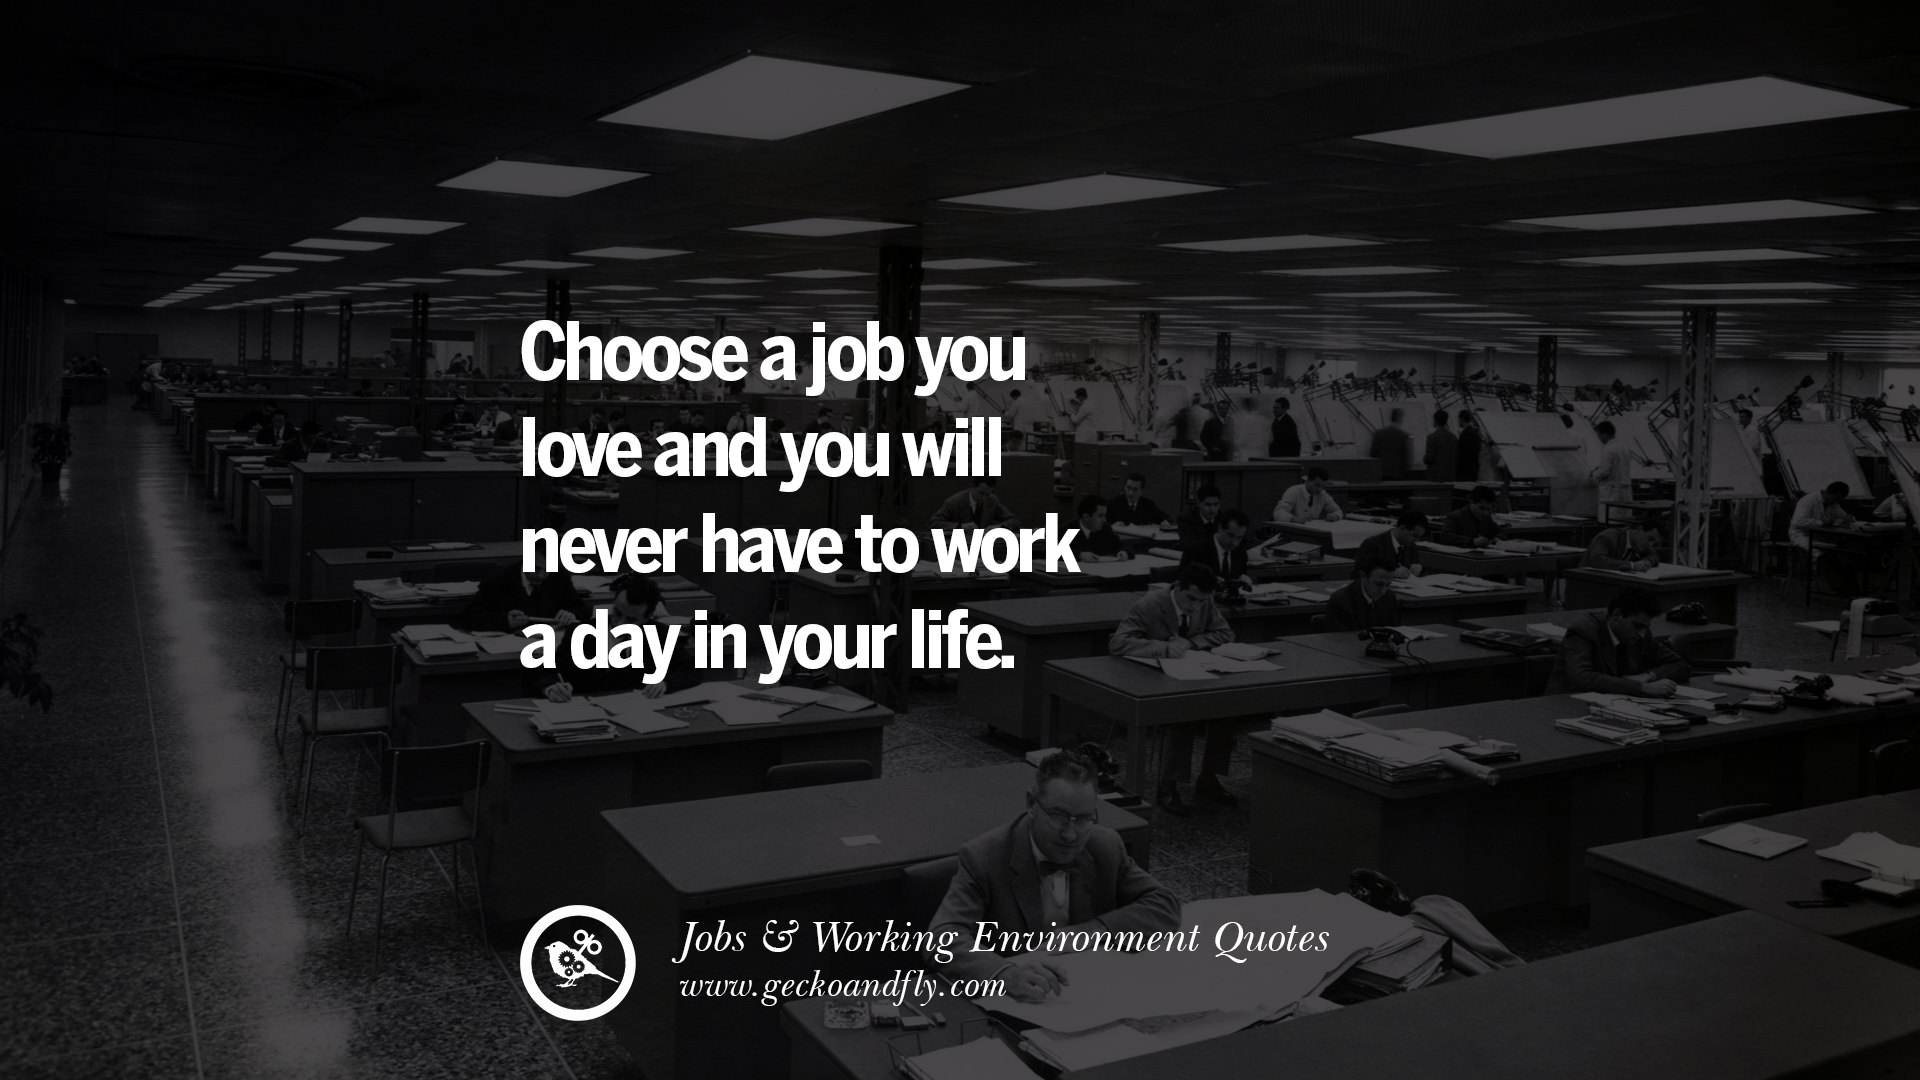 Motivational Life Quotes Wallpapers 20 Quotes On Office Job Occupation Working Environment